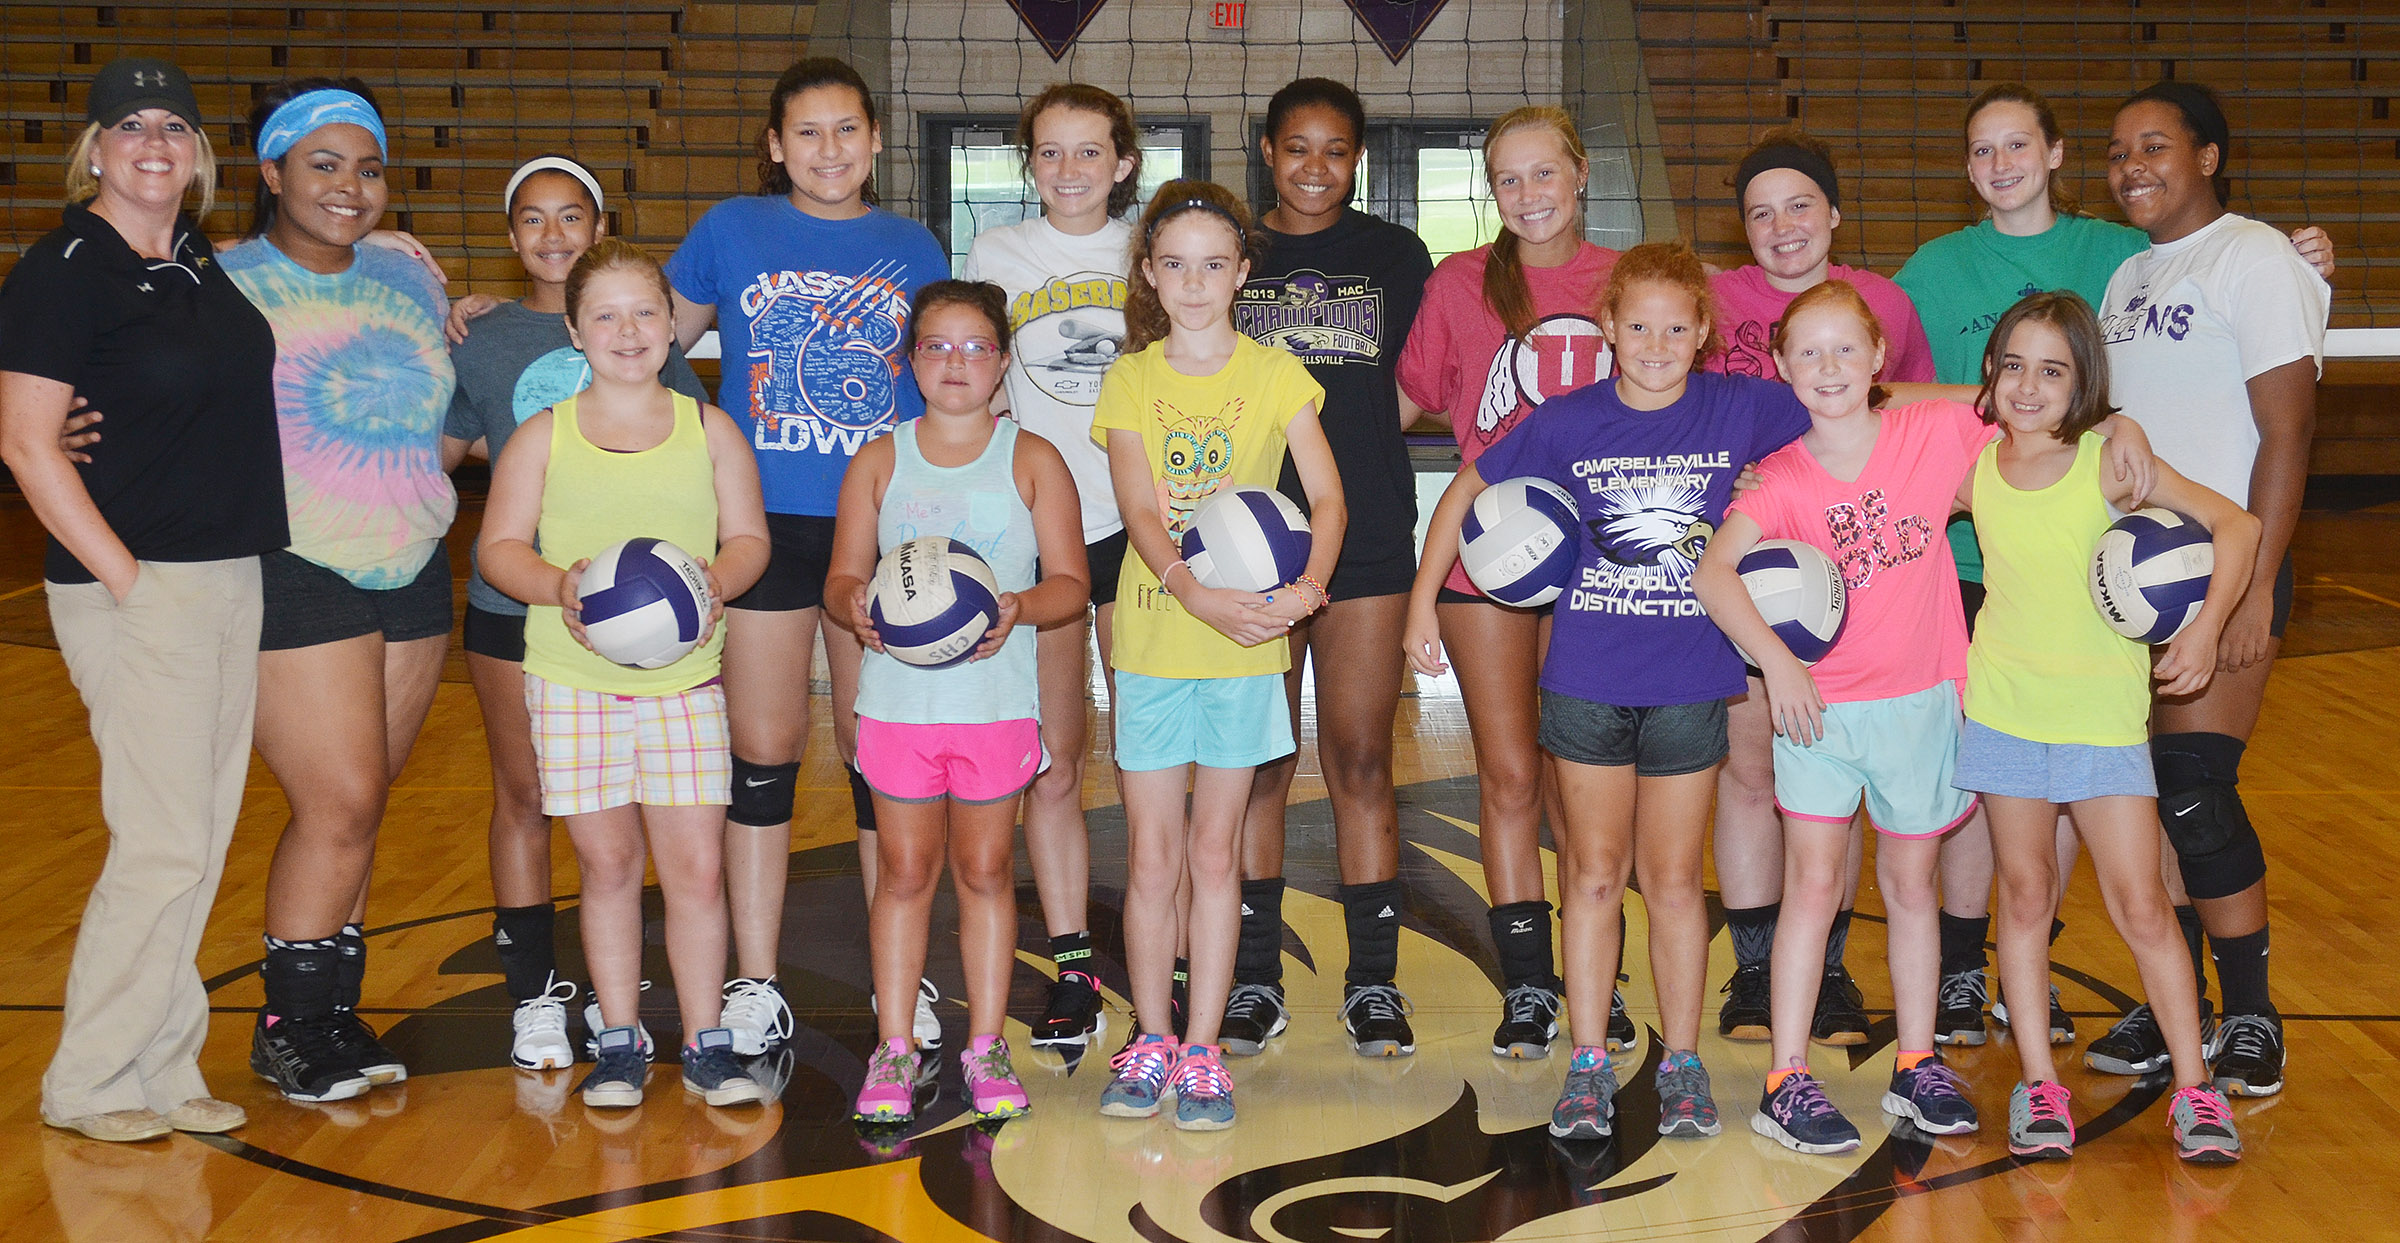 CHS Lady Eagle volleyball team hosted a camp recently, with about 10 students participating. Camp participants attending the morning session are, from left, front, CMS sixth-grader Alexis Sharp, Hadley Brasher, who attends school in Bowling Green, Alissa Hughes, a fourth-grader at Hodgenville Elementary School, CES third-grader Analeigh Foster, fourth-grader Nora Harris and fifth-grader Anna Floyd. In back are, from left, head coach Elisha Rhodes and CHS volleyball players junior Natalie Caldwell, freshmen Laci Hodgens and Anna Clara Moura, junior Salena Ritchie, senior Vonnea Smith, junior Tatem Wiseman, senior Caitlin Bright, freshman Zoie Sidebottom and senior Kayla Young. Absent from the photo is camper Amaya Anguiano, who is a fourth-grader at CES.